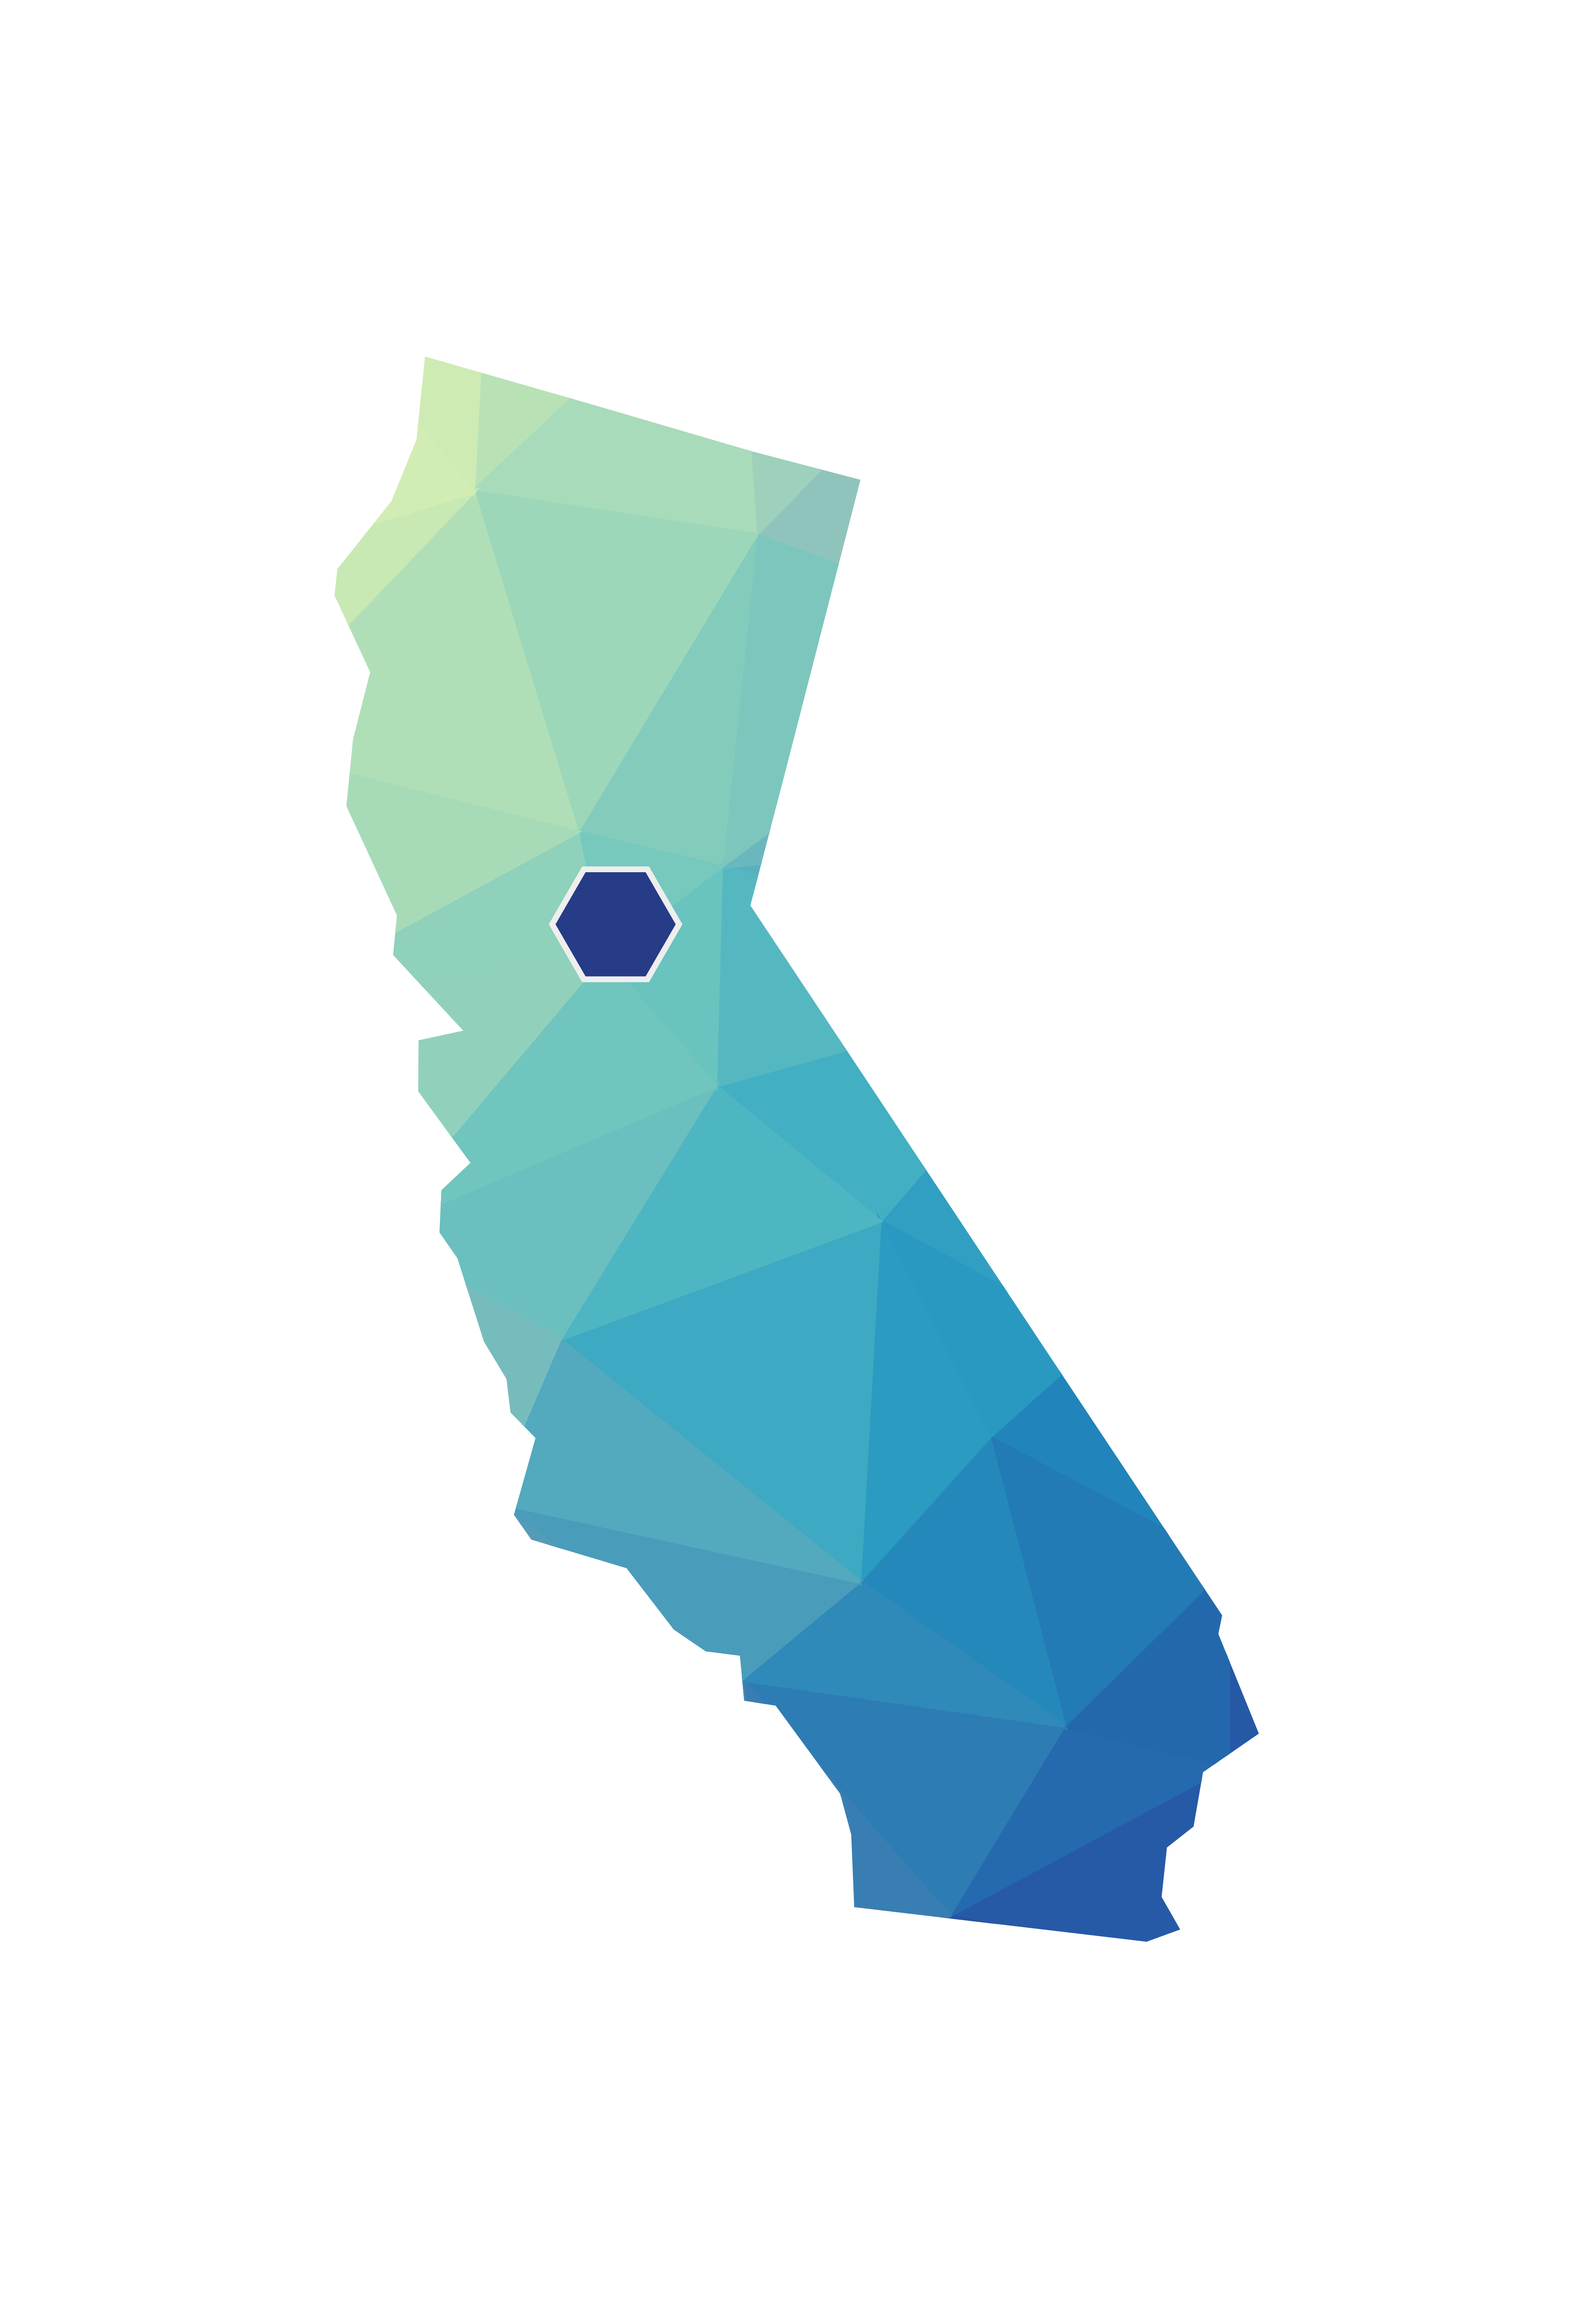 Direct Technology HQ - NorCal